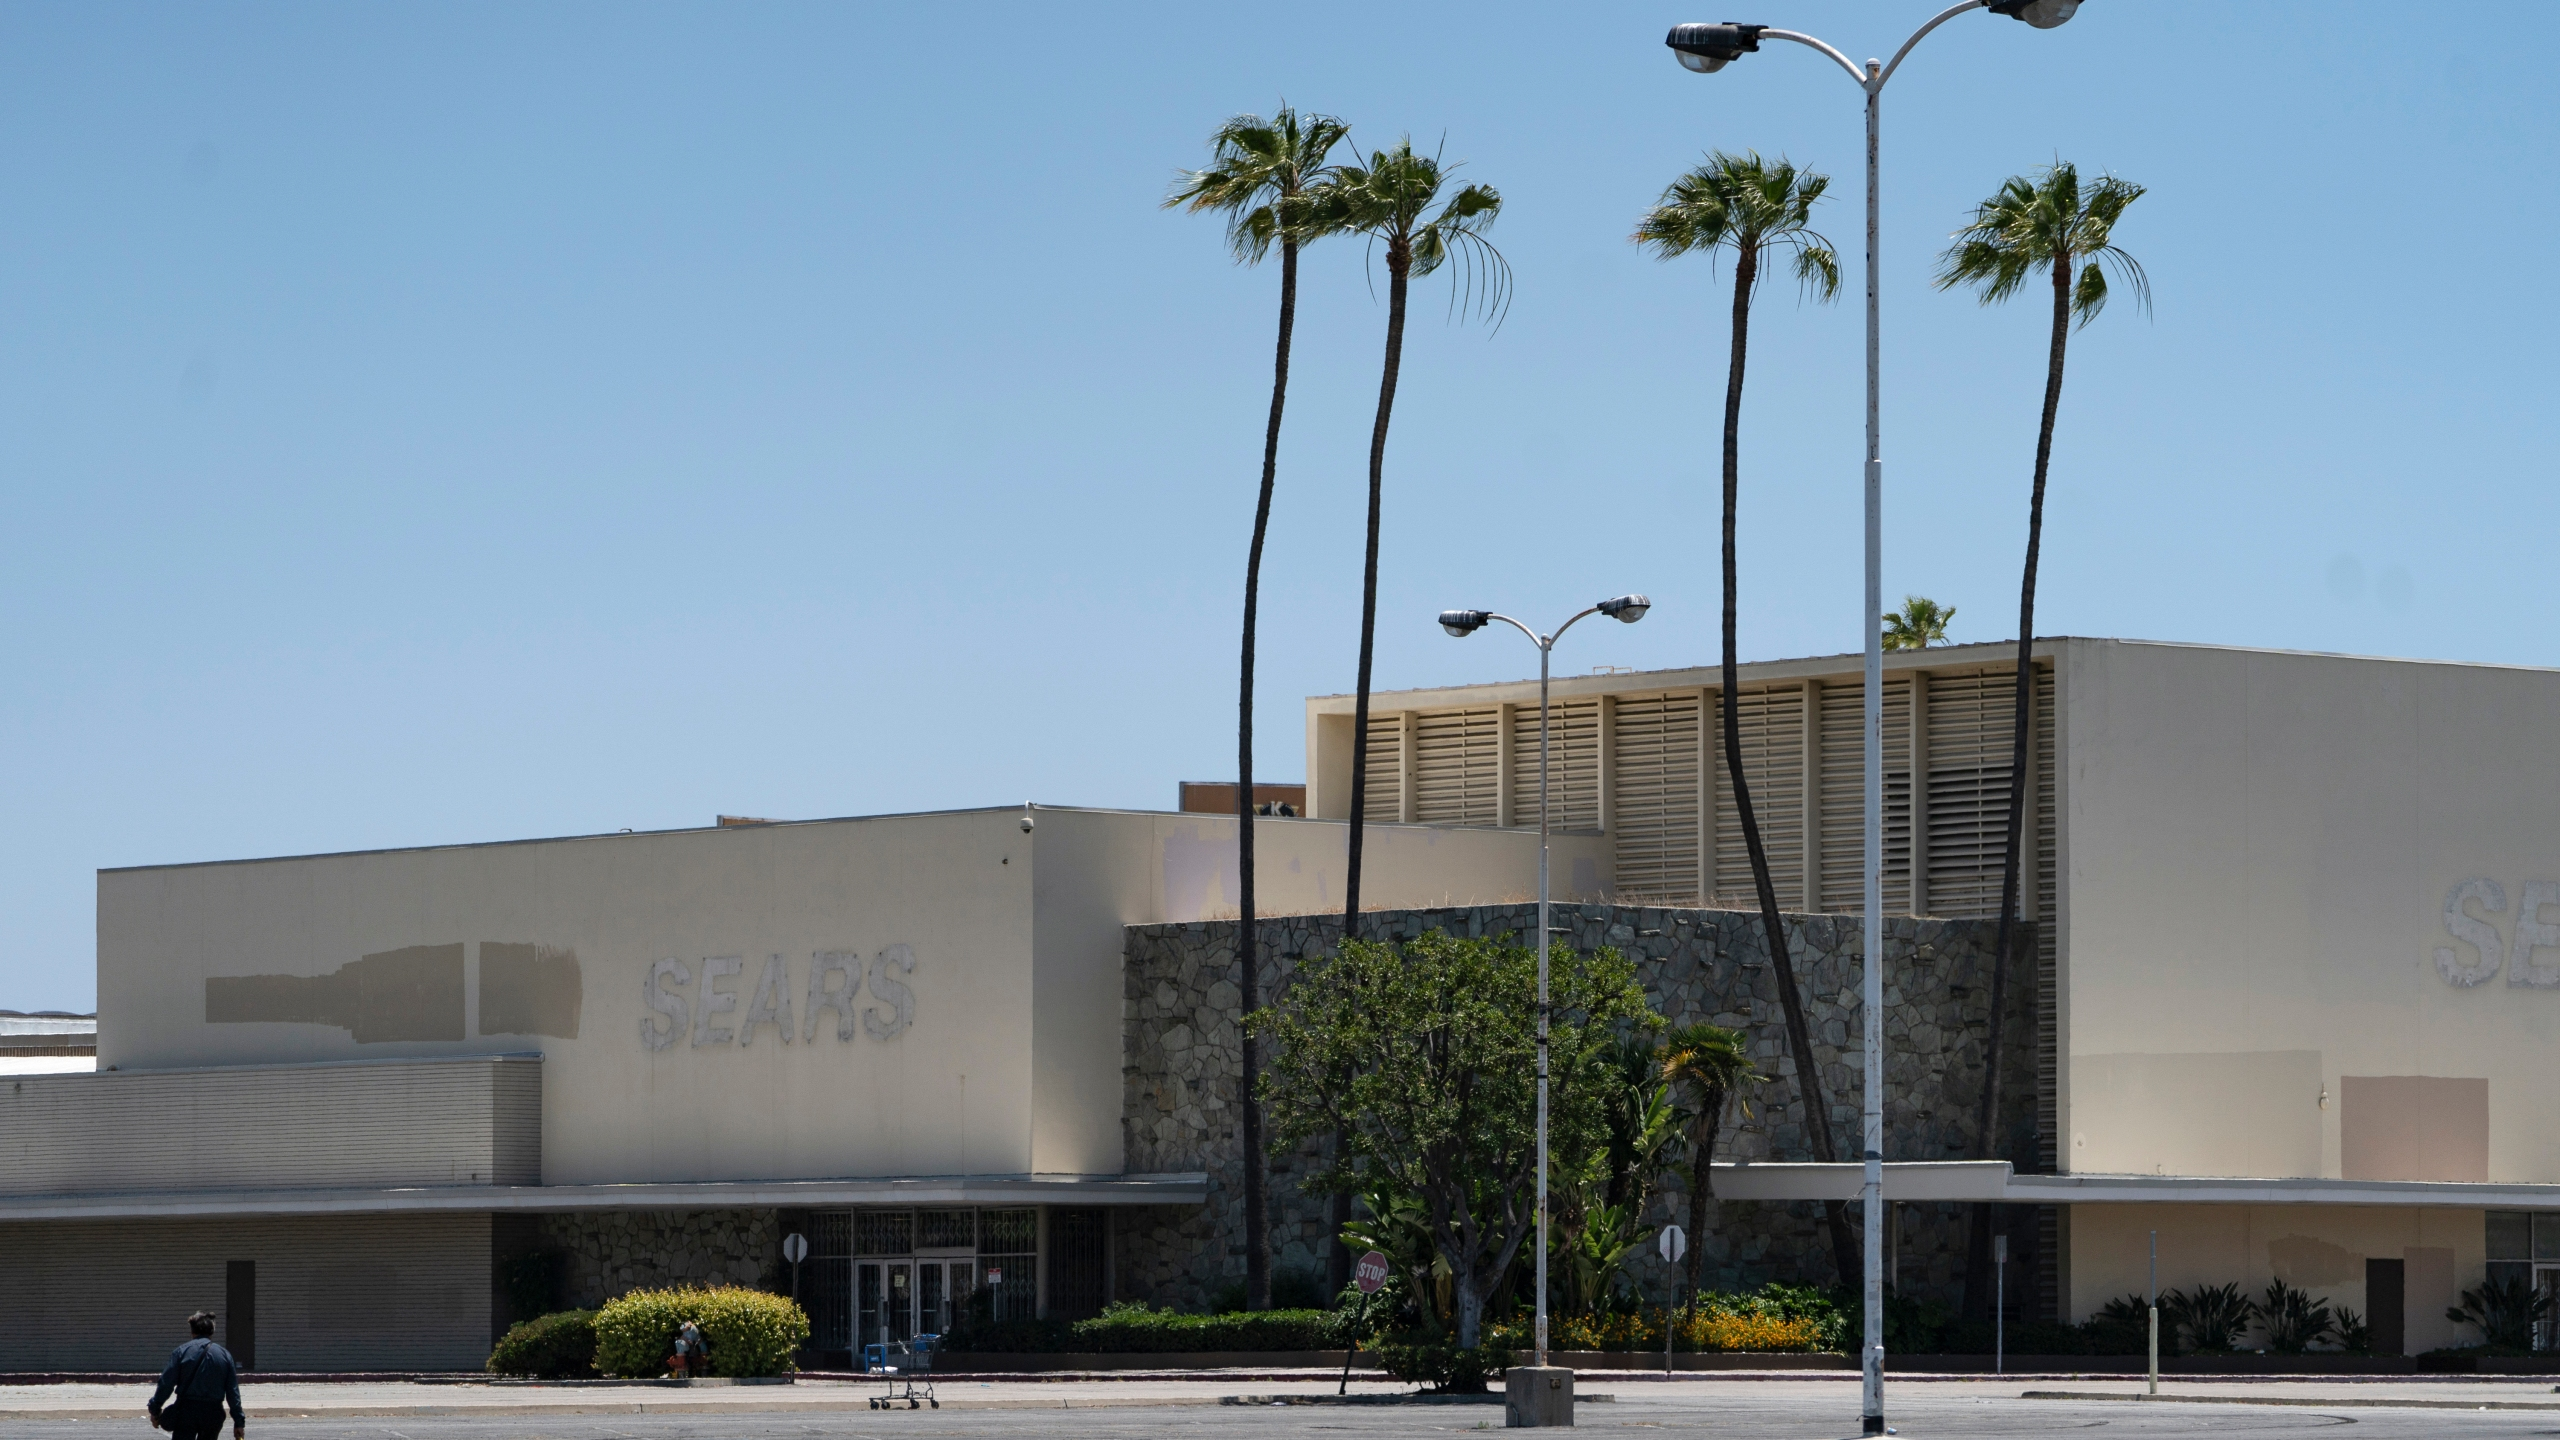 This Thursday, May 27, 2021, photo shows the closed Sears in Buena Park Mall in Buena Park, Calif. (AP Photo/Damian Dovarganes)